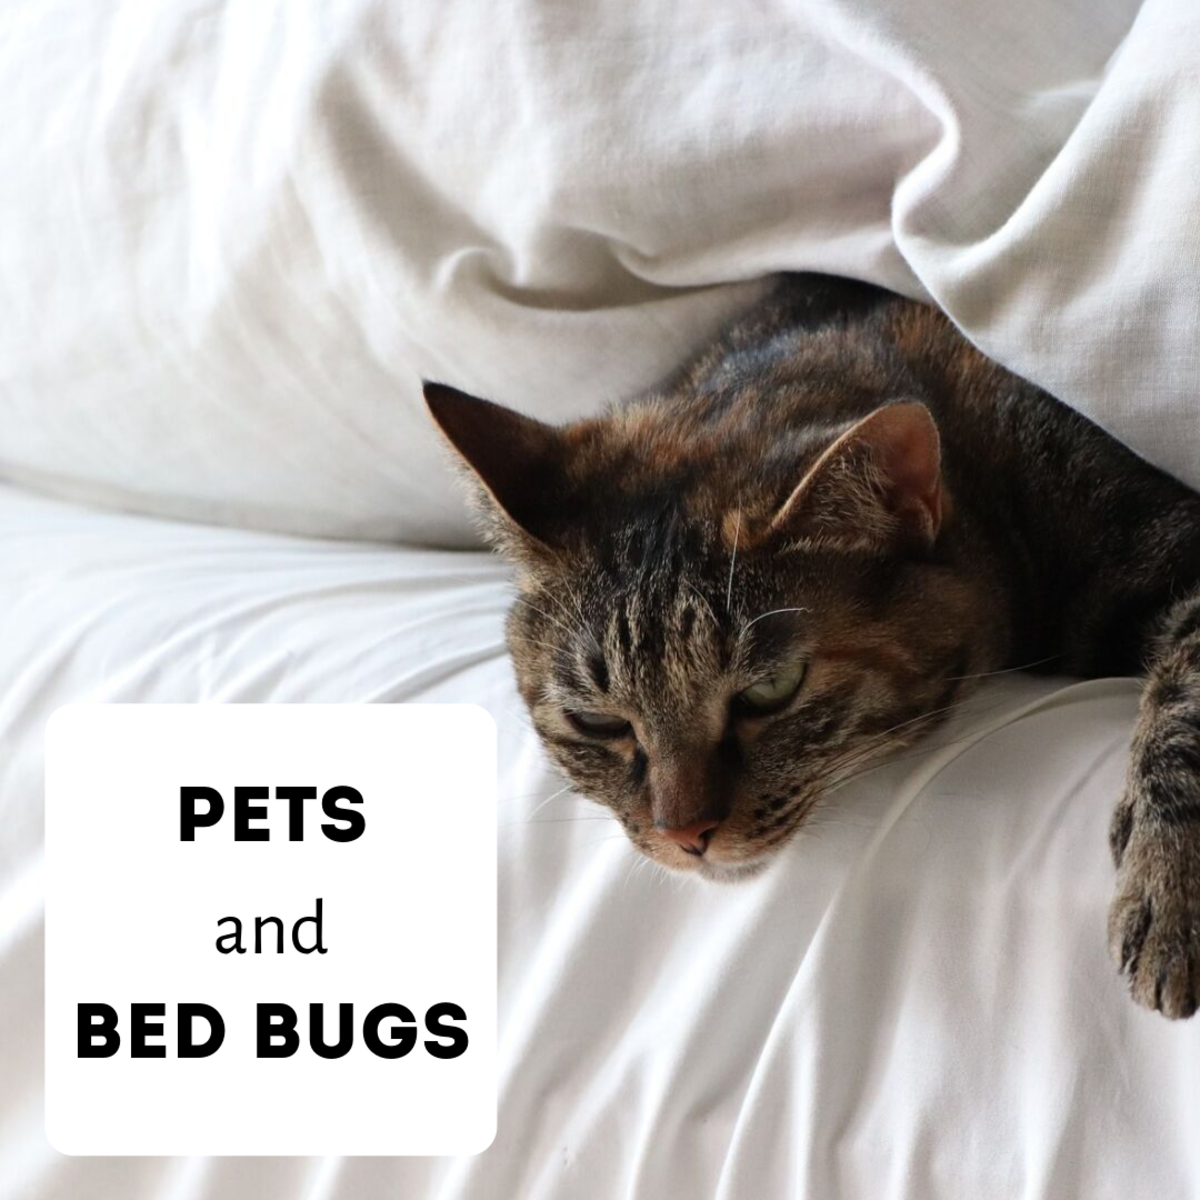 Learn about whether bed bugs pose a danger to your pets.